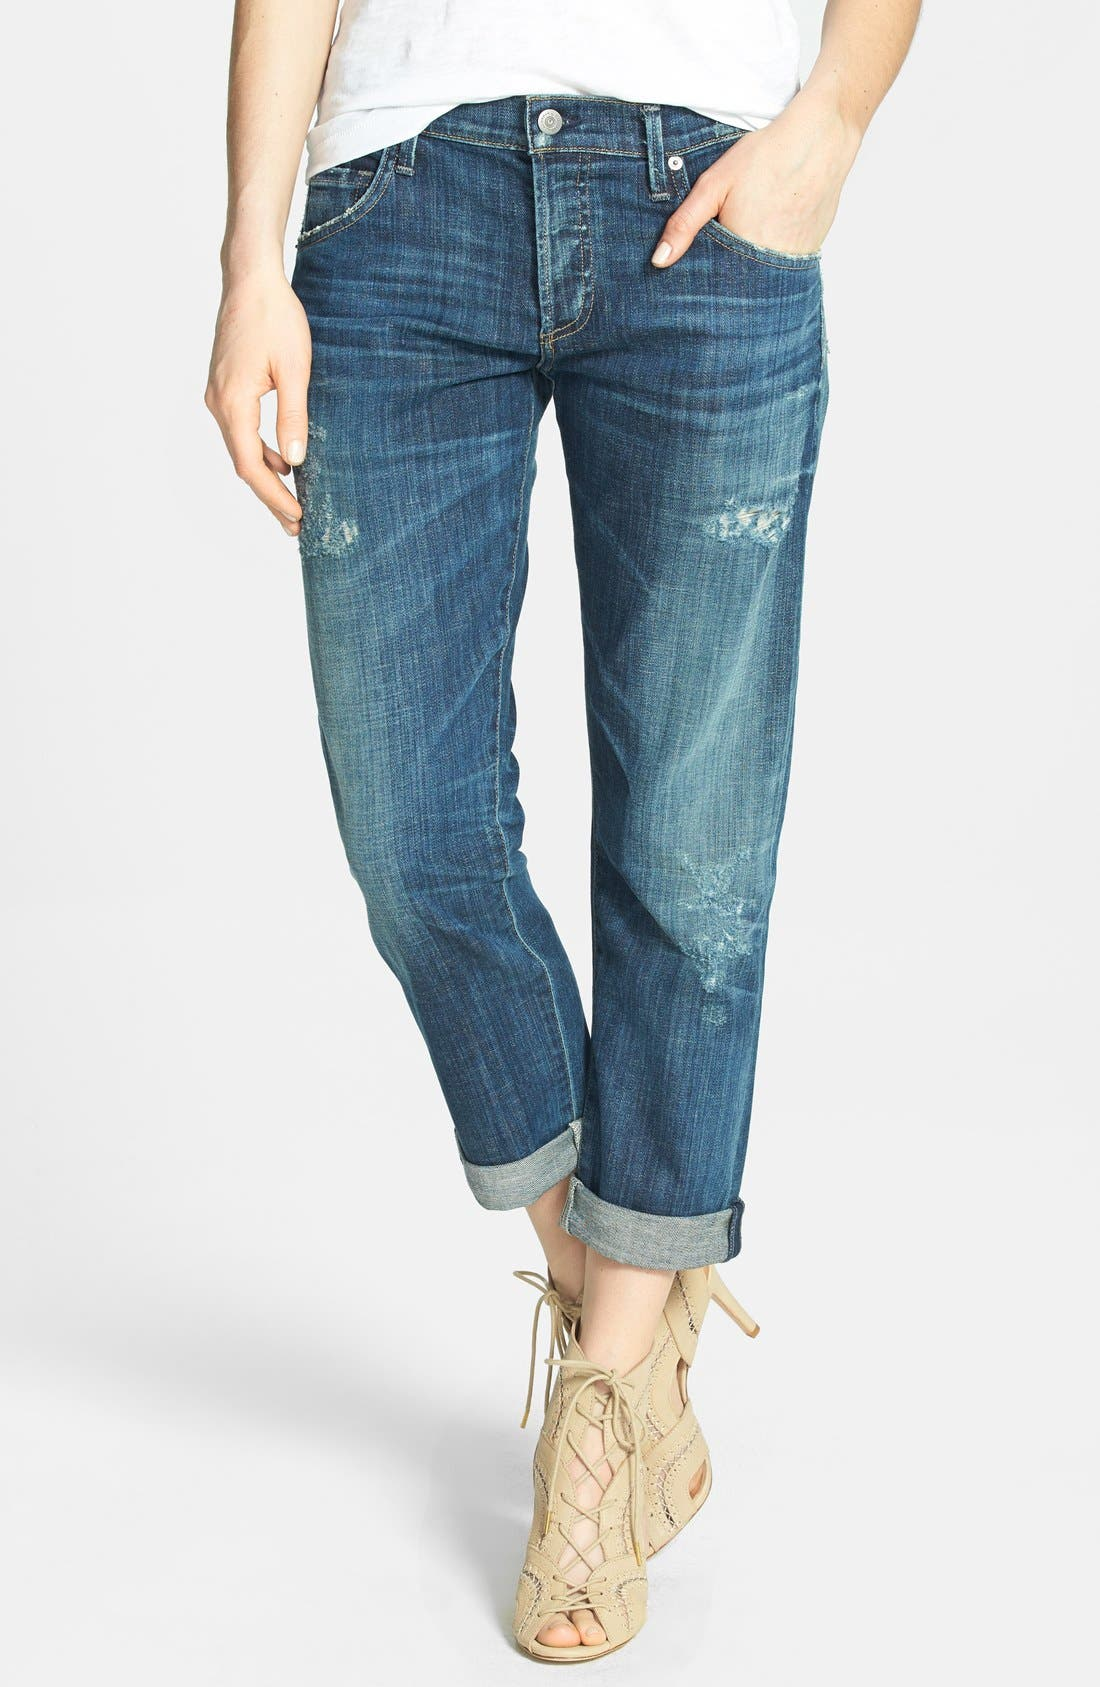 Alternate Image 1 Selected - Citizens of Humanity 'Dylan' Distressed Straight Leg Jeans (Nomad)